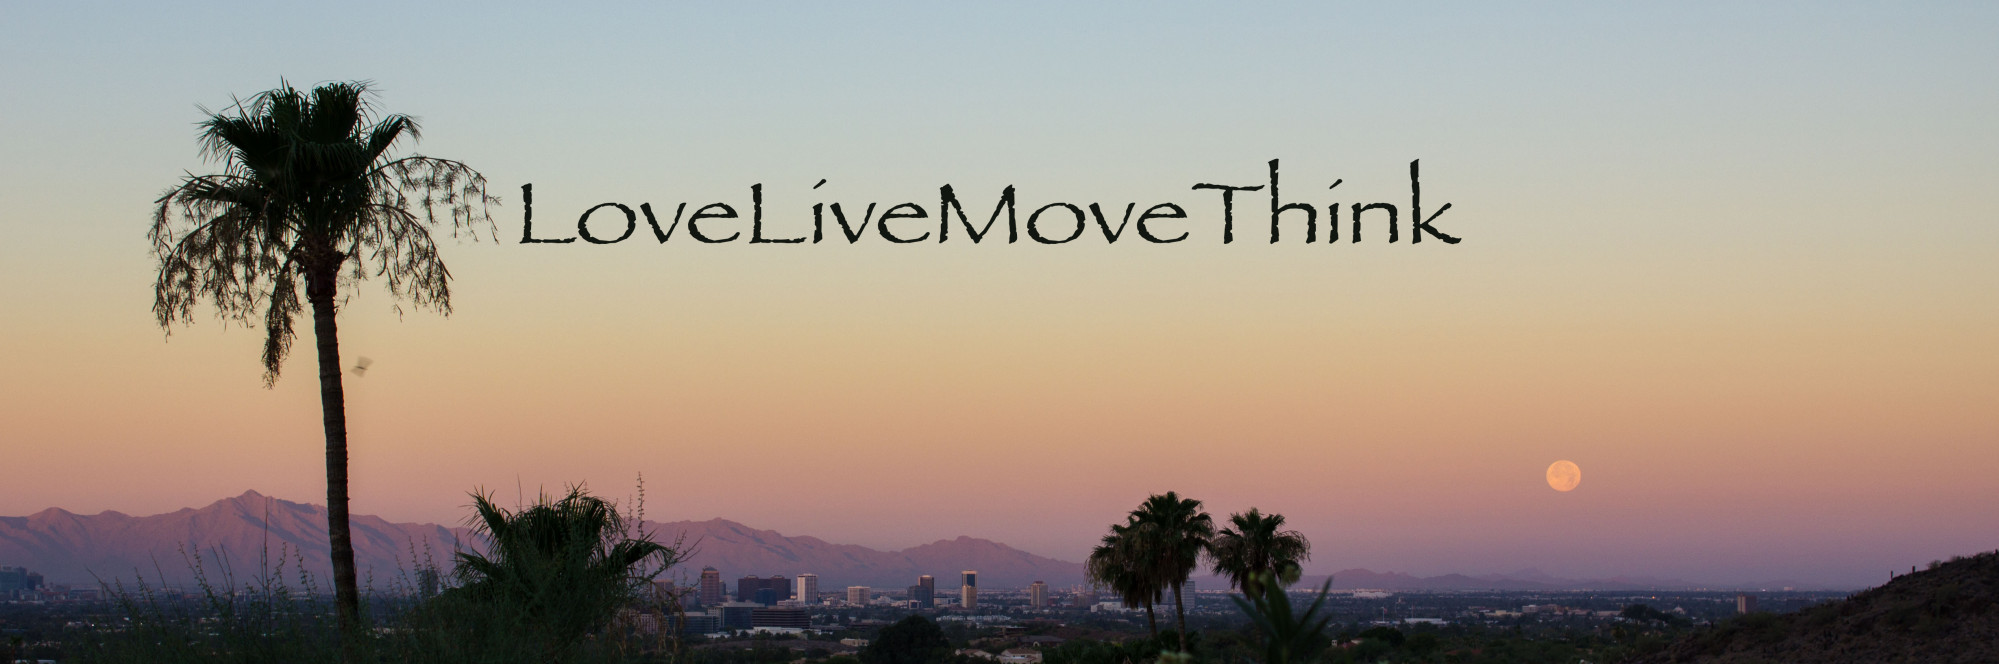 LoveLiveMoveThink